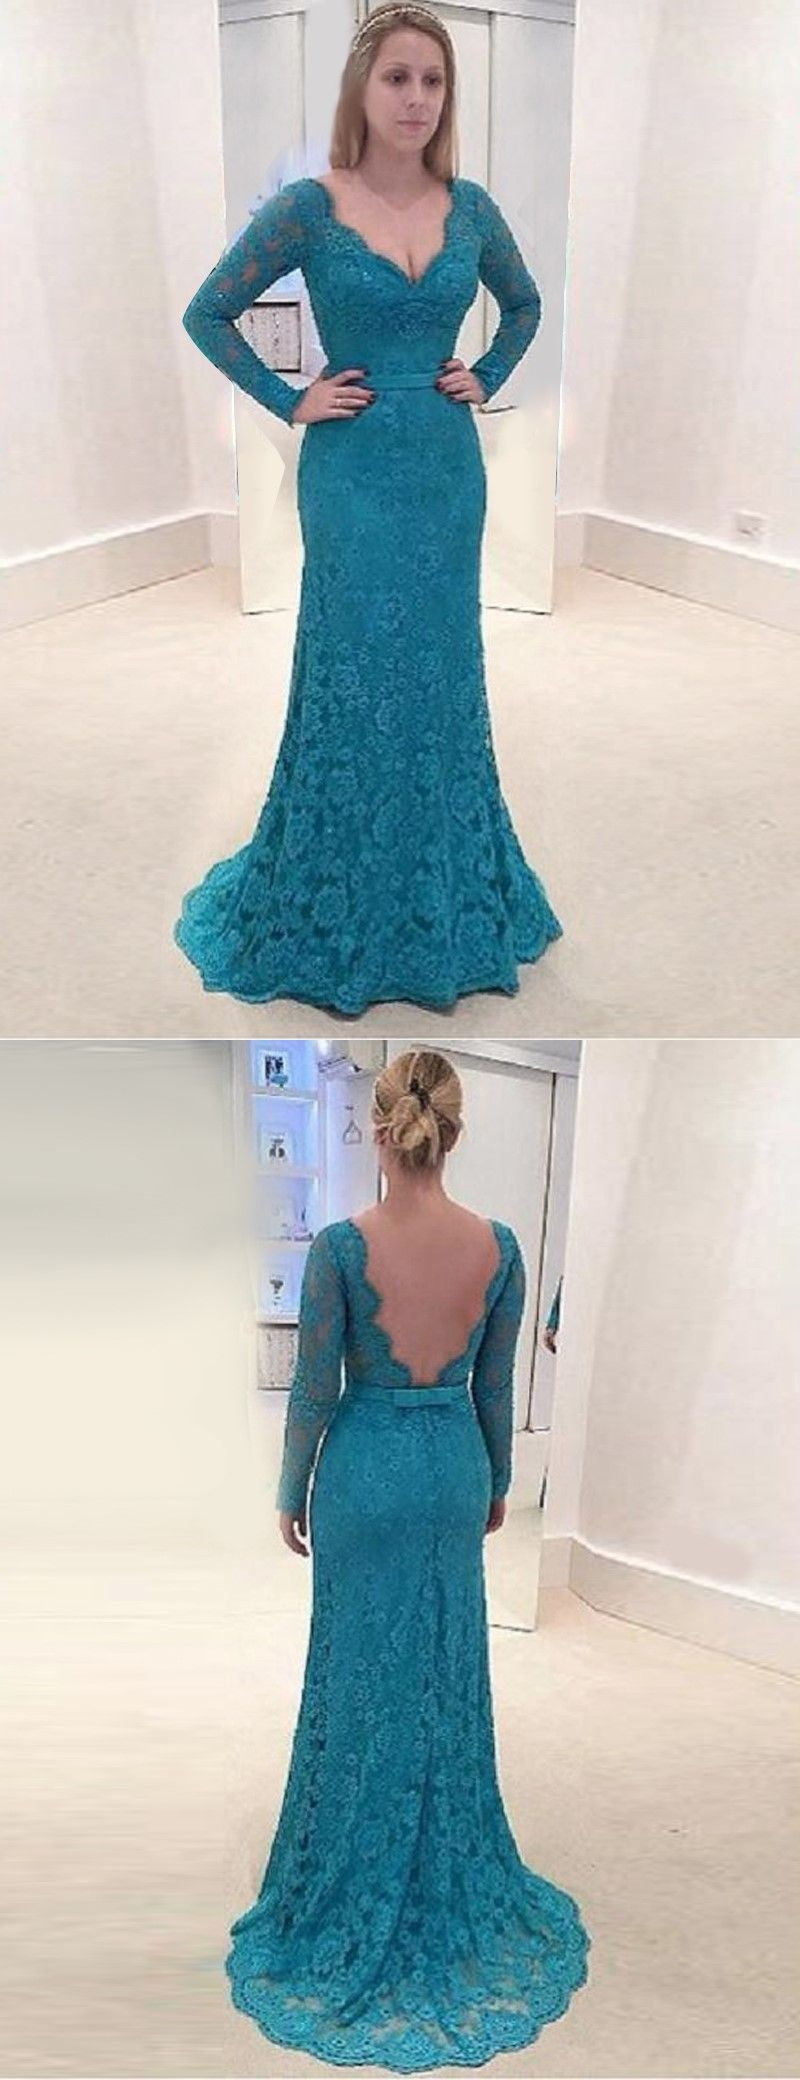 Mermaid Backless Turquoise Lace Mother Of The Bride Dresses with ...